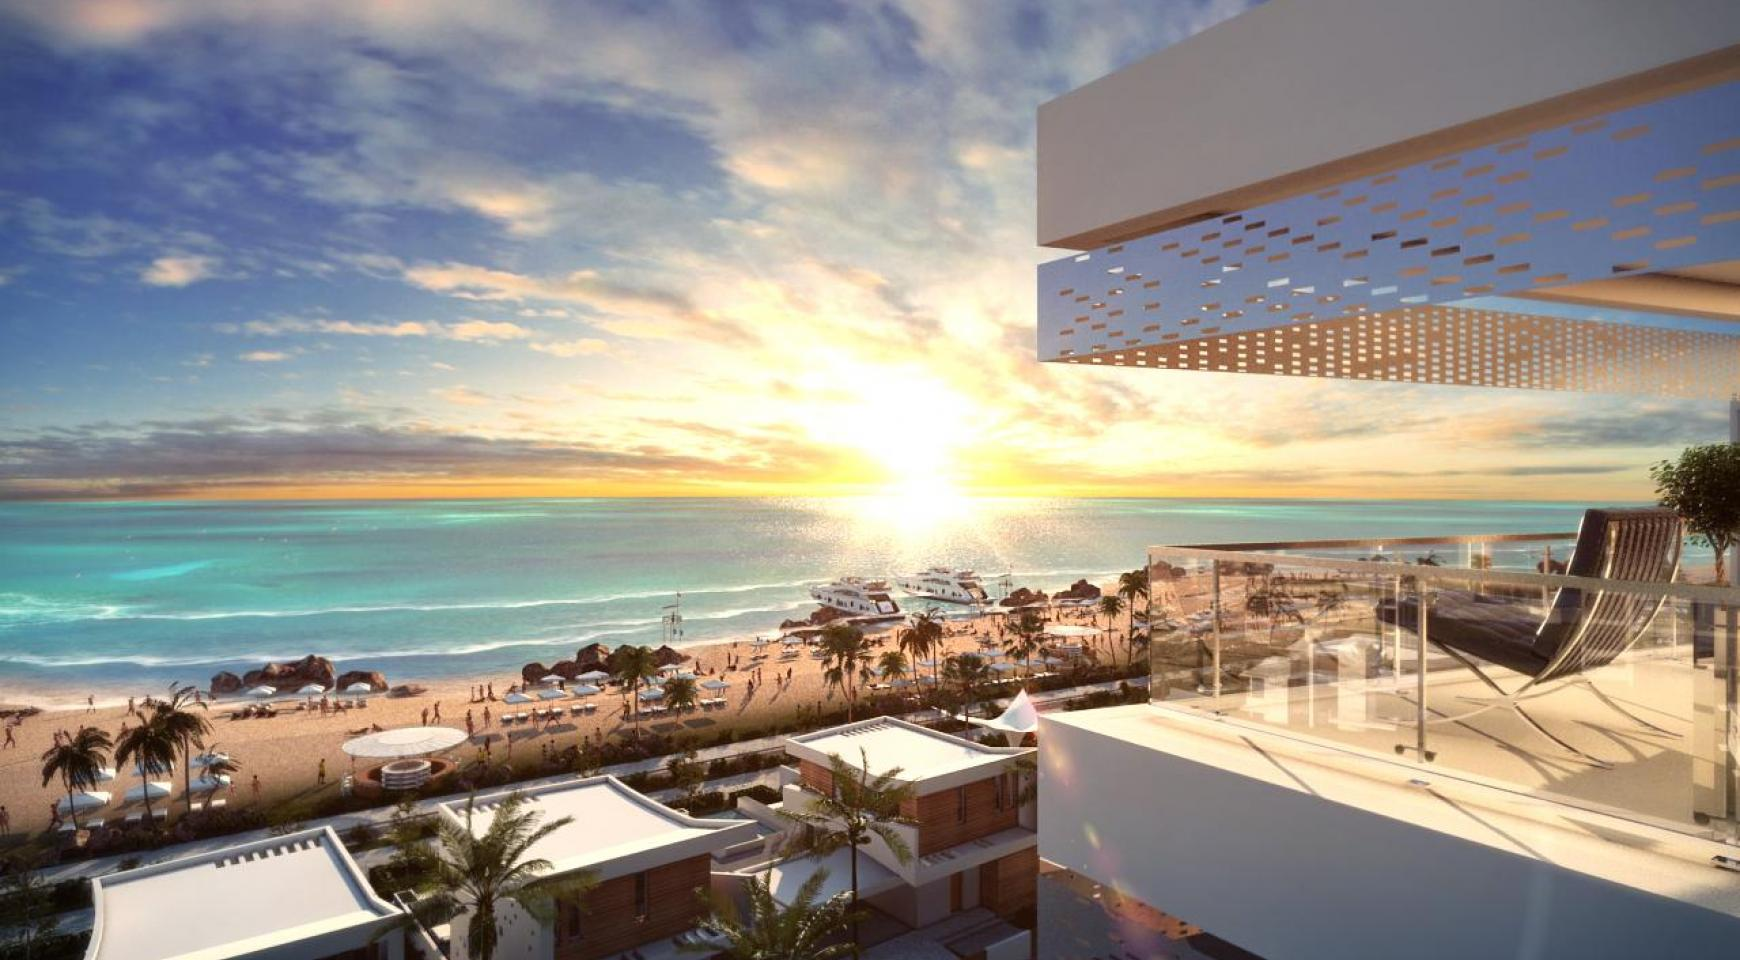 Contemporary One Bedroom Apartment in New Project by the Sea - 4